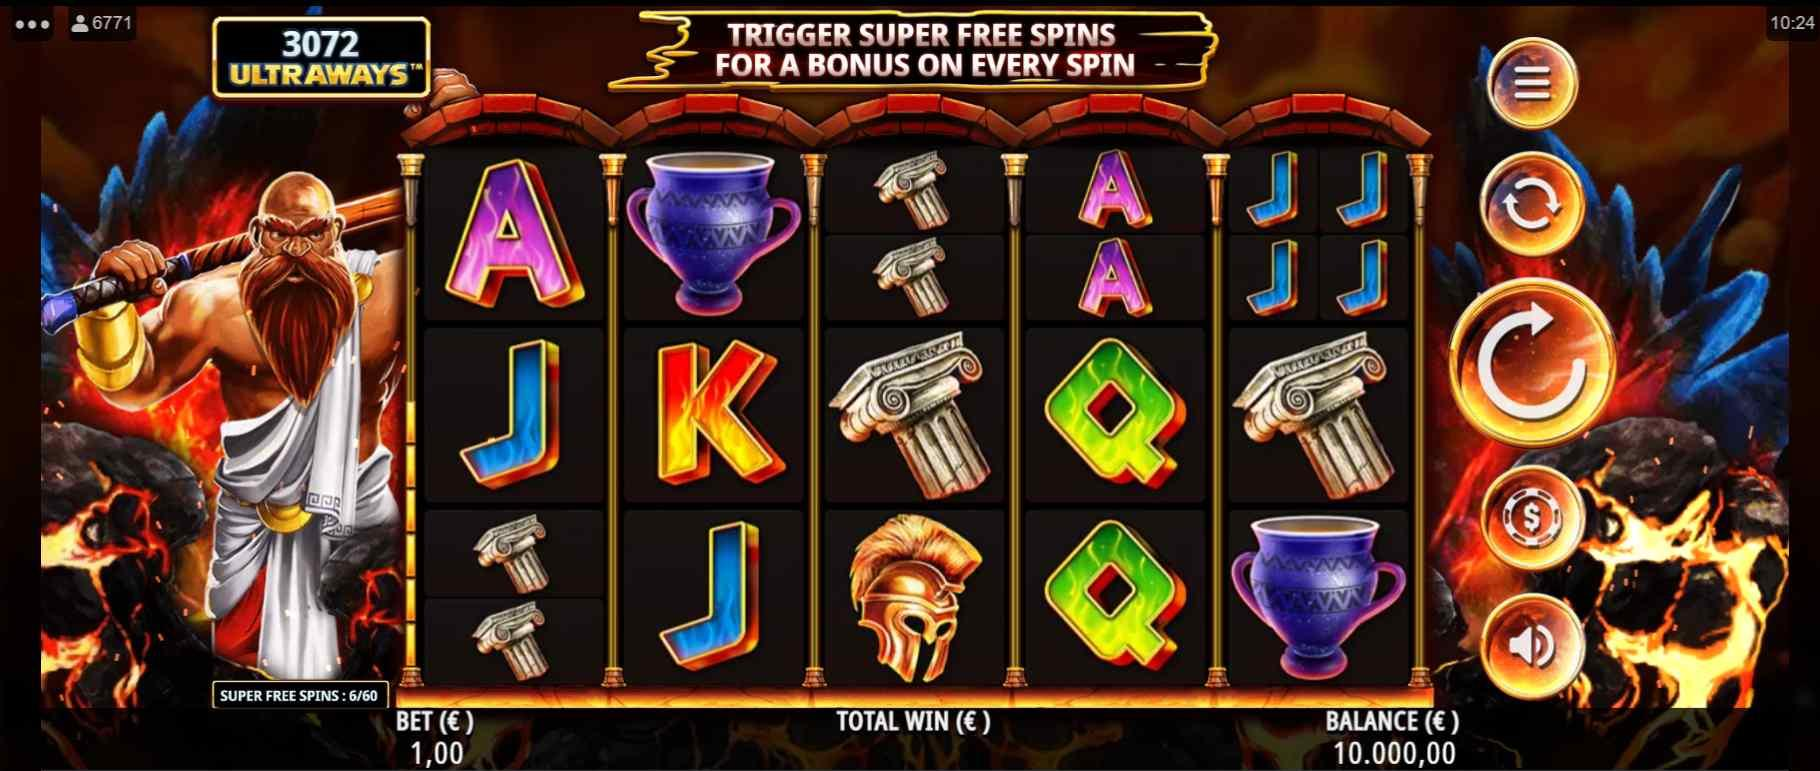 God of Fire Slot Gameplay